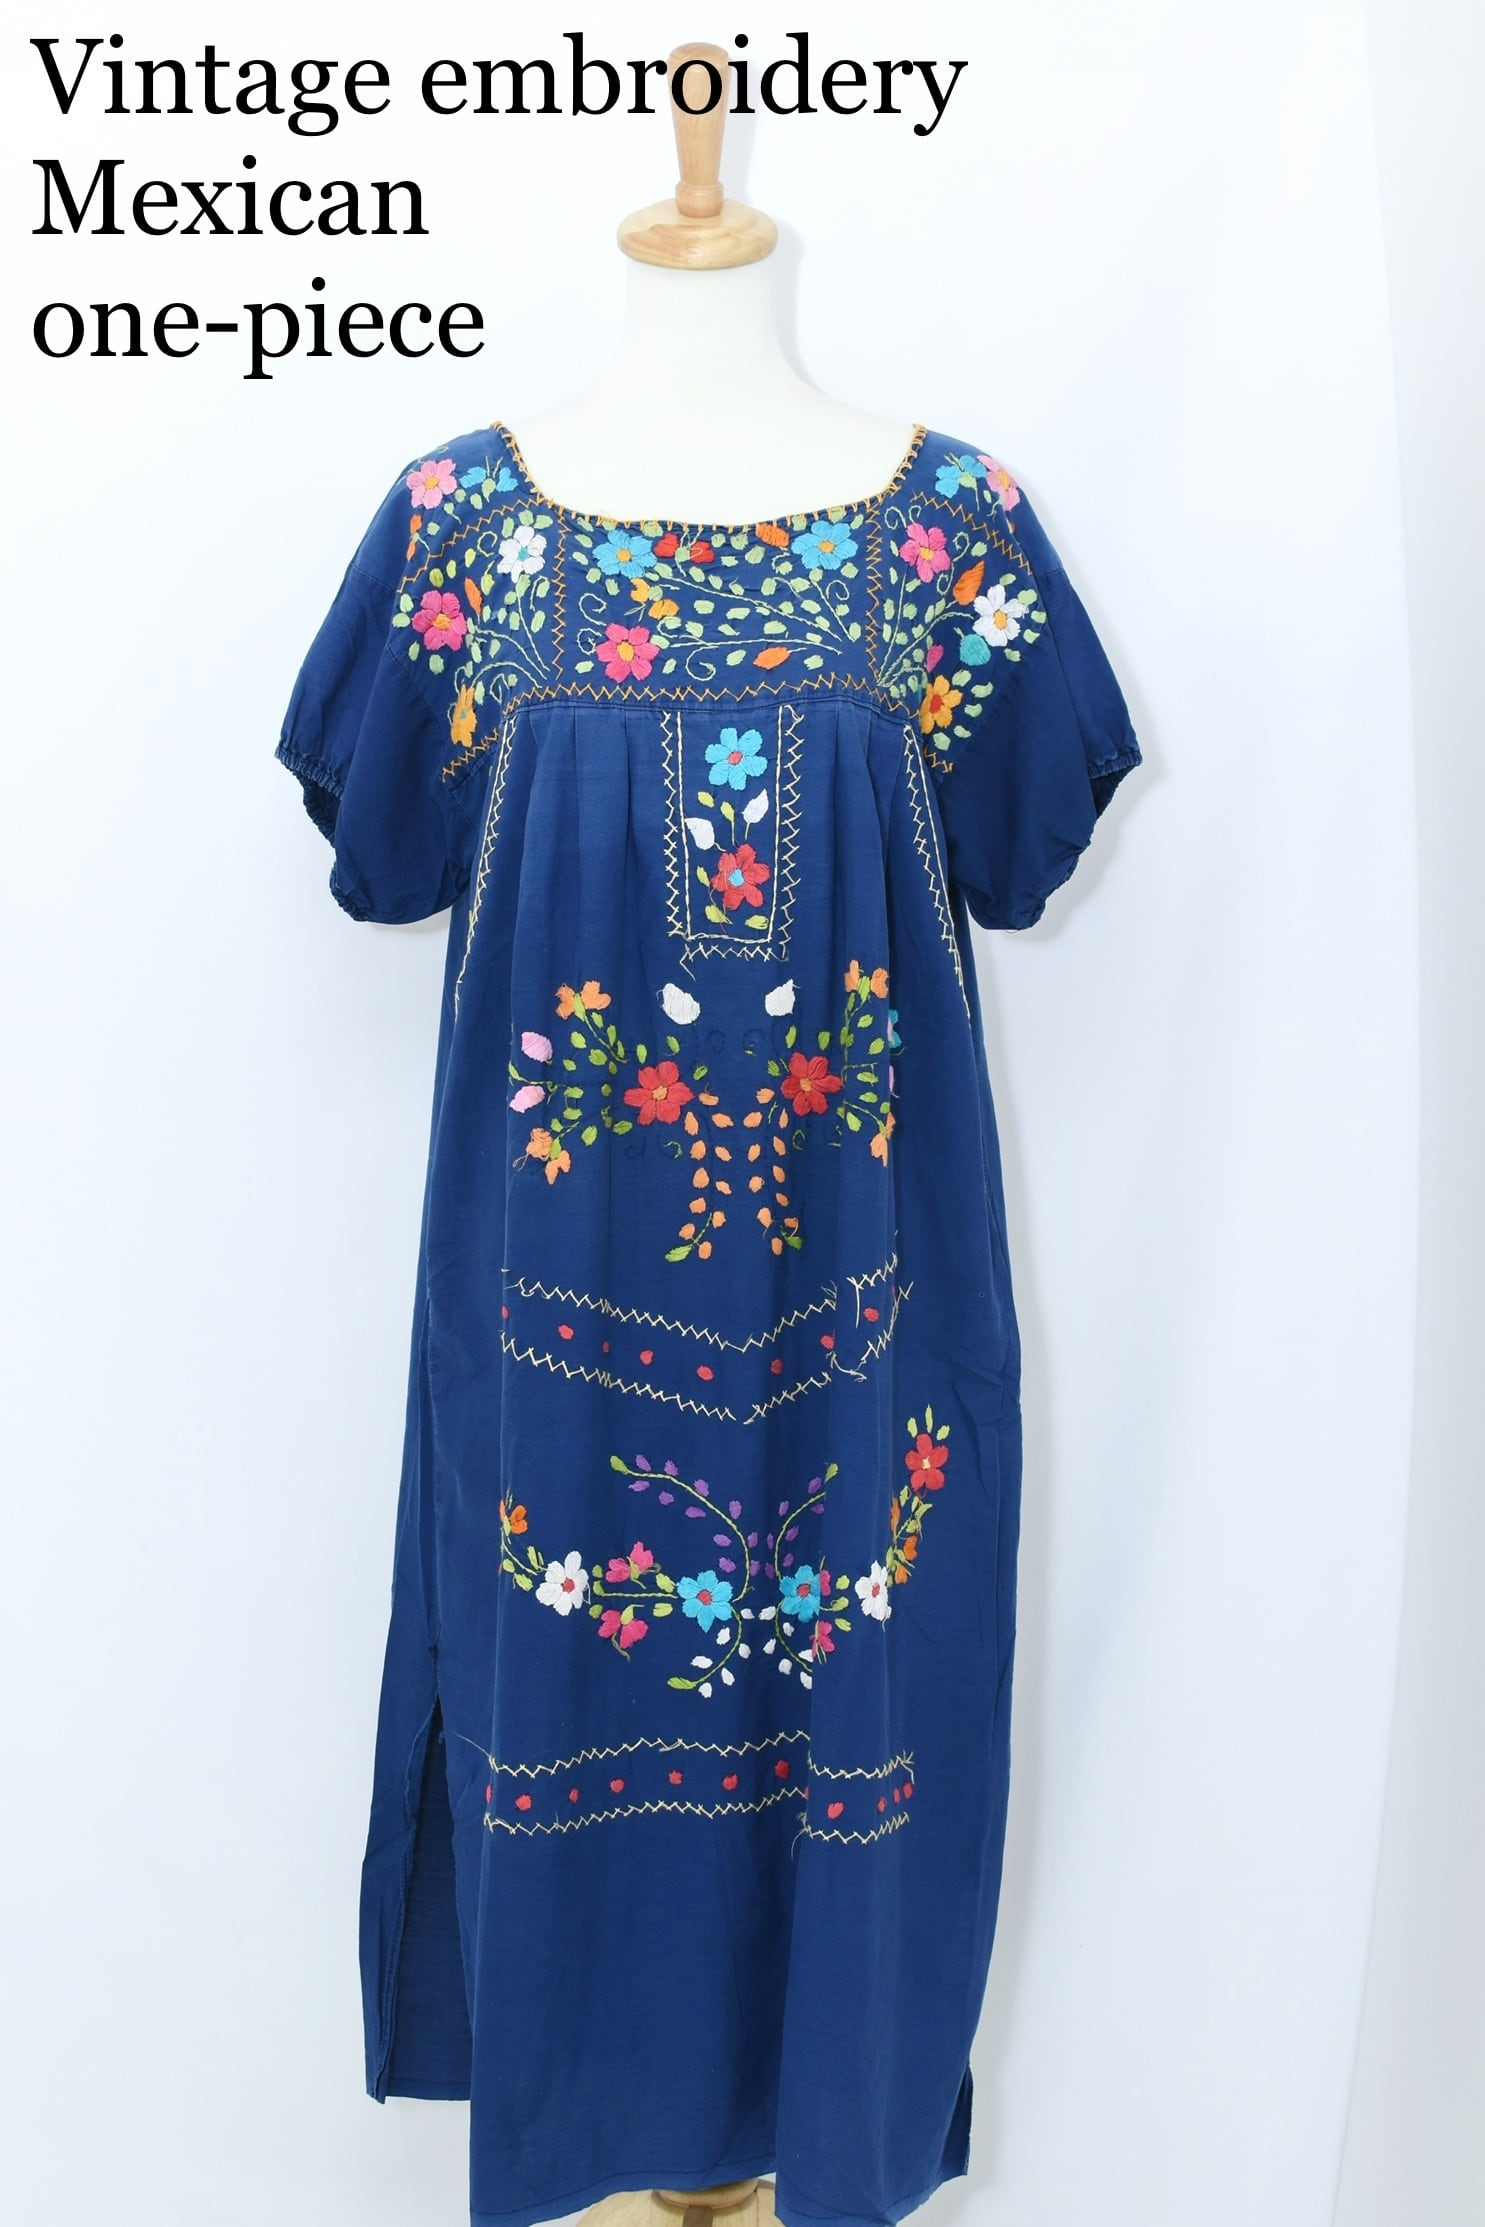 vintage embroidery Mexican one-piece NVY